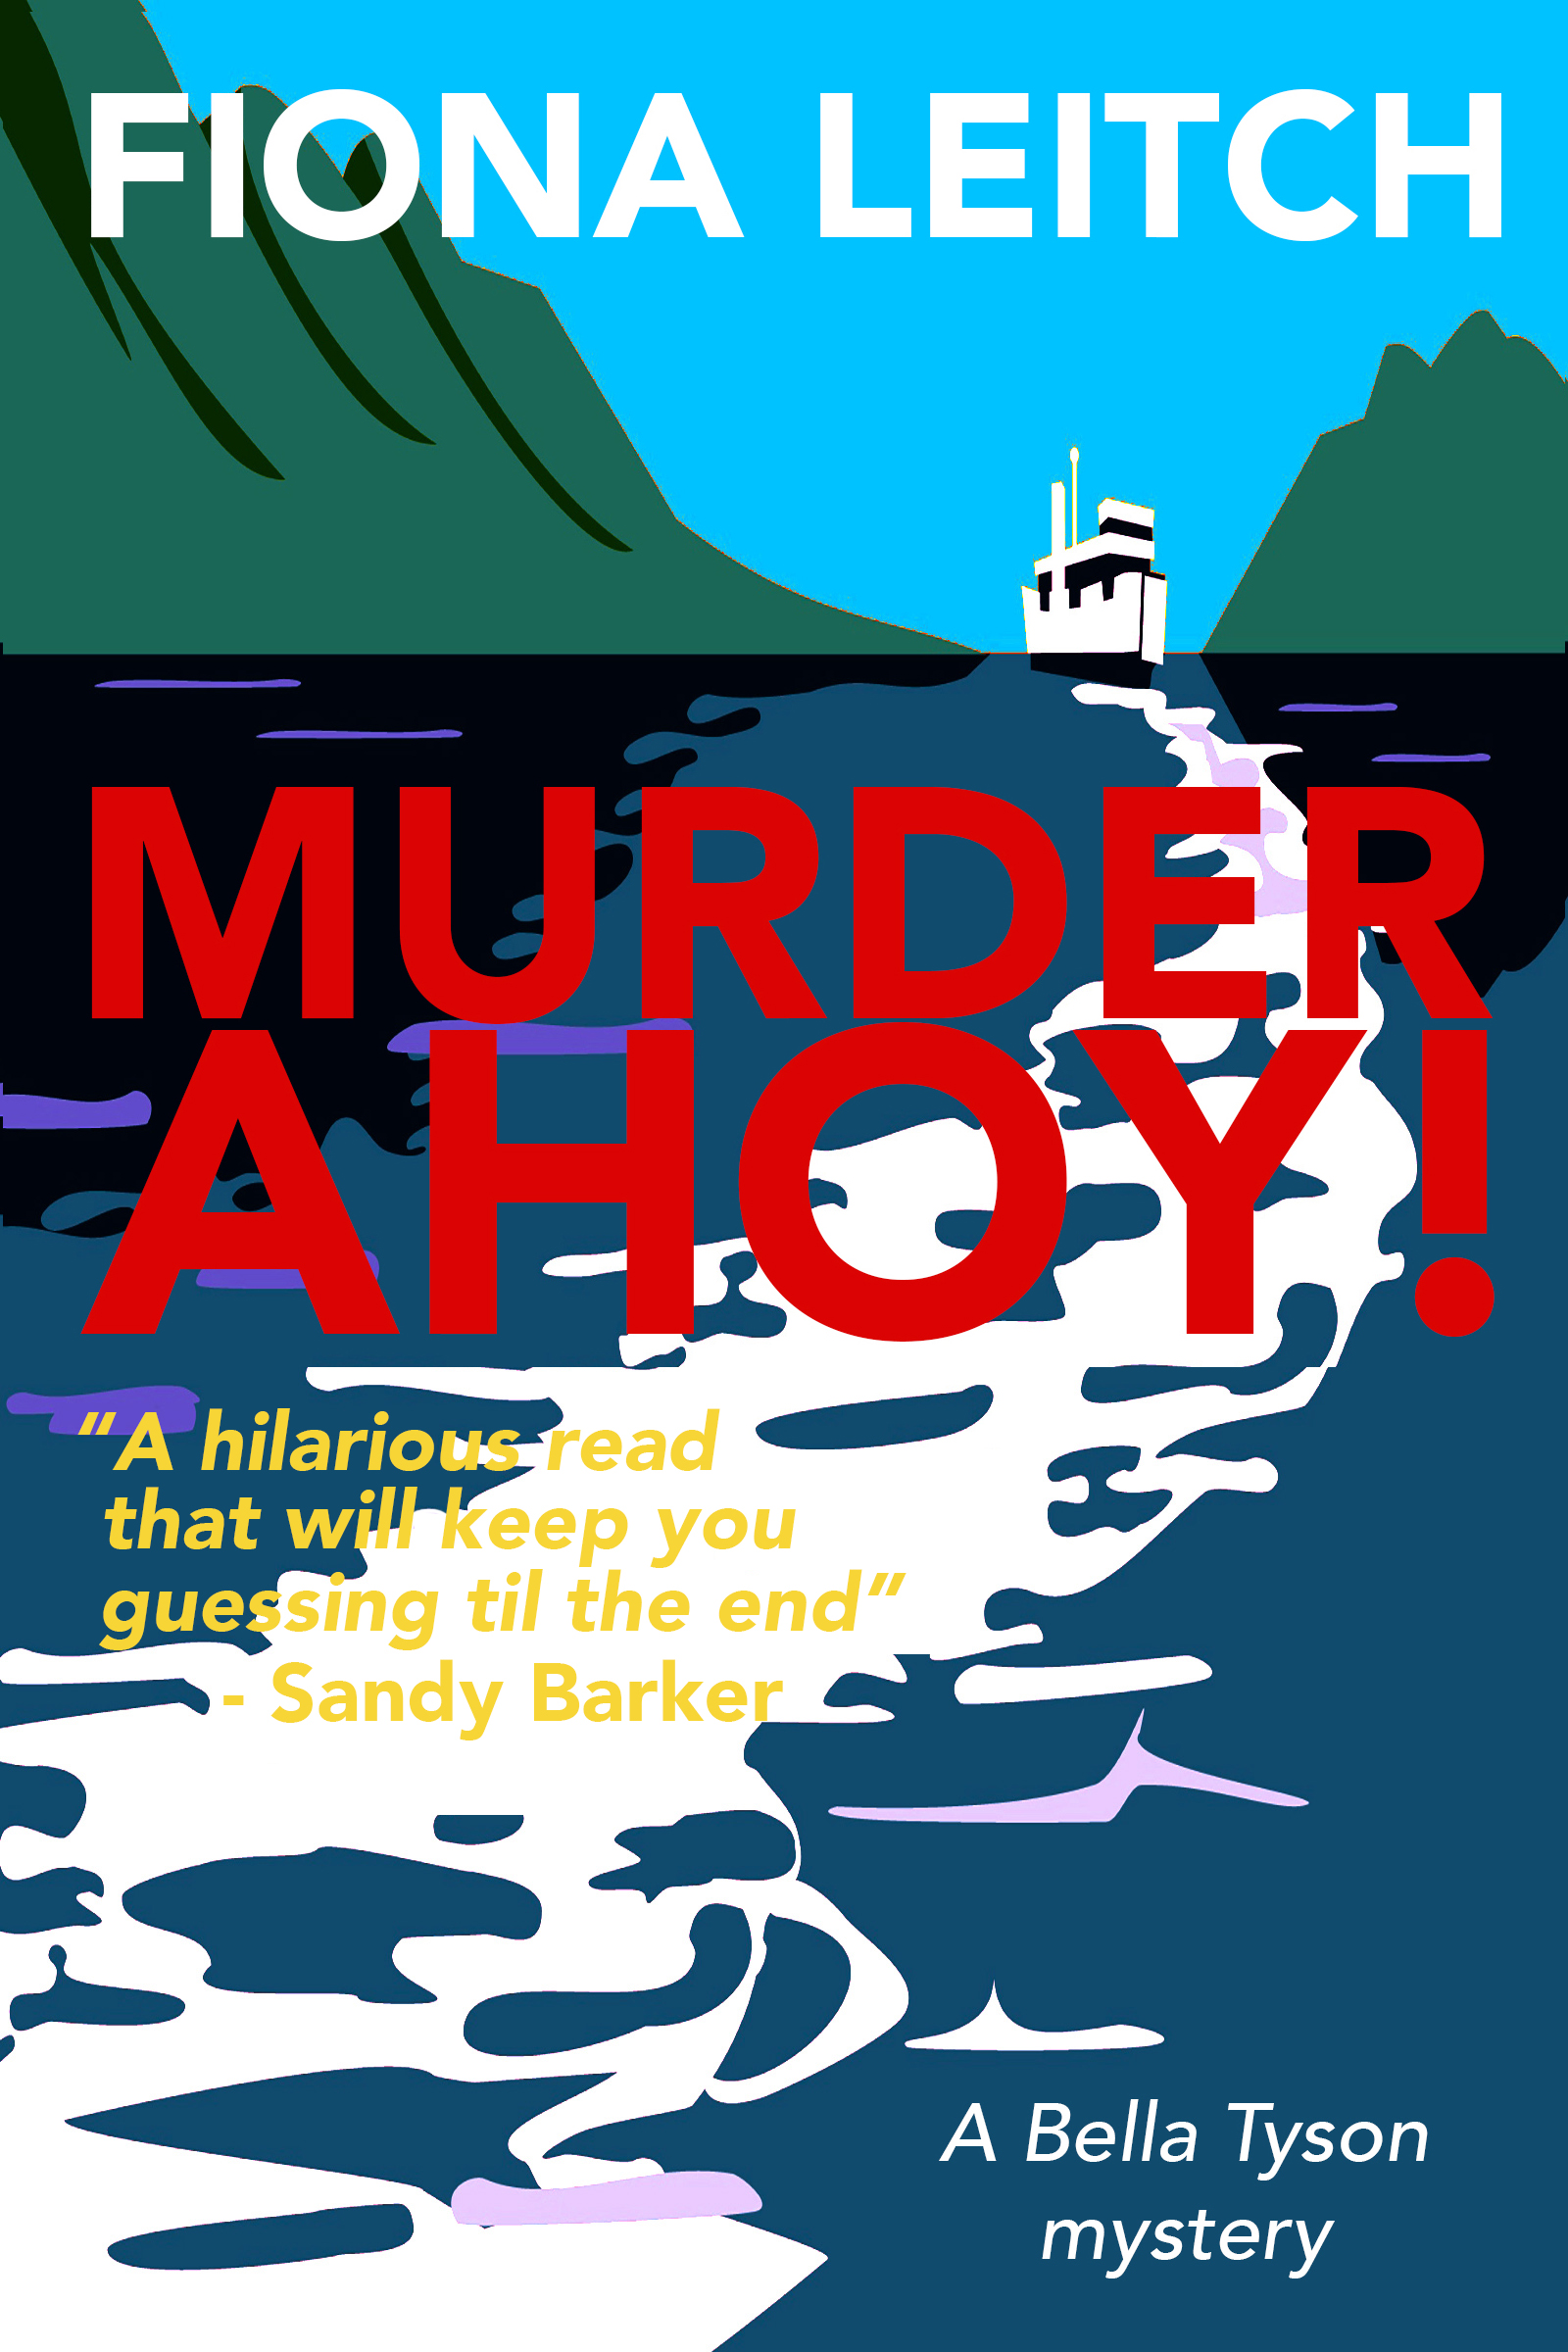 Murder Ahoy! by Fiona Leitch #BookReview #BlogTour #BellaIsBack #20BooksofSummer #Book1